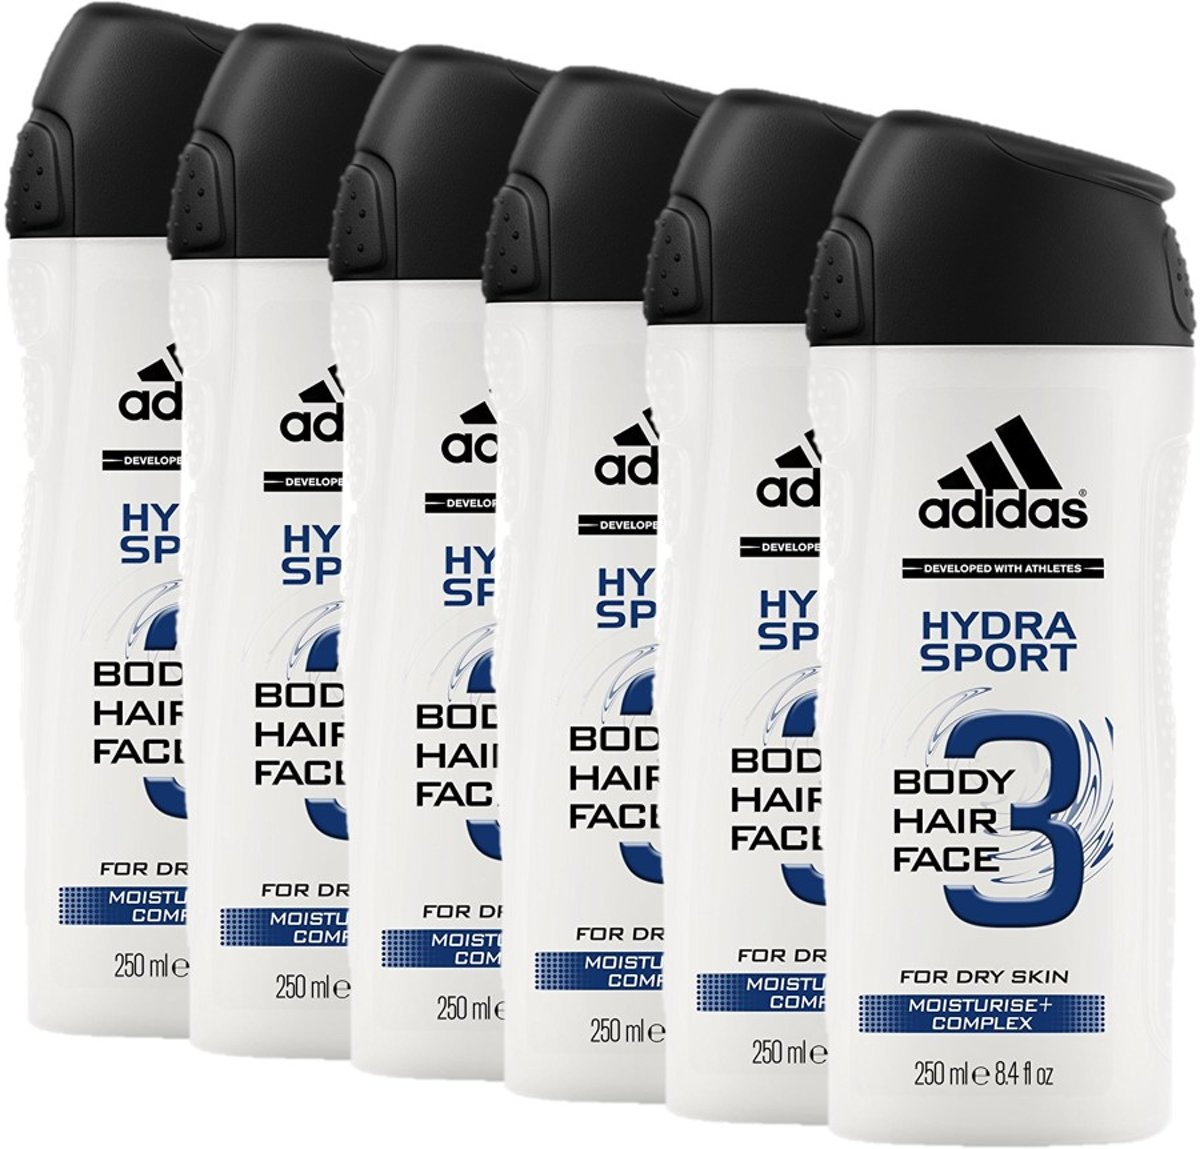 Adidas Bad en douche parfums